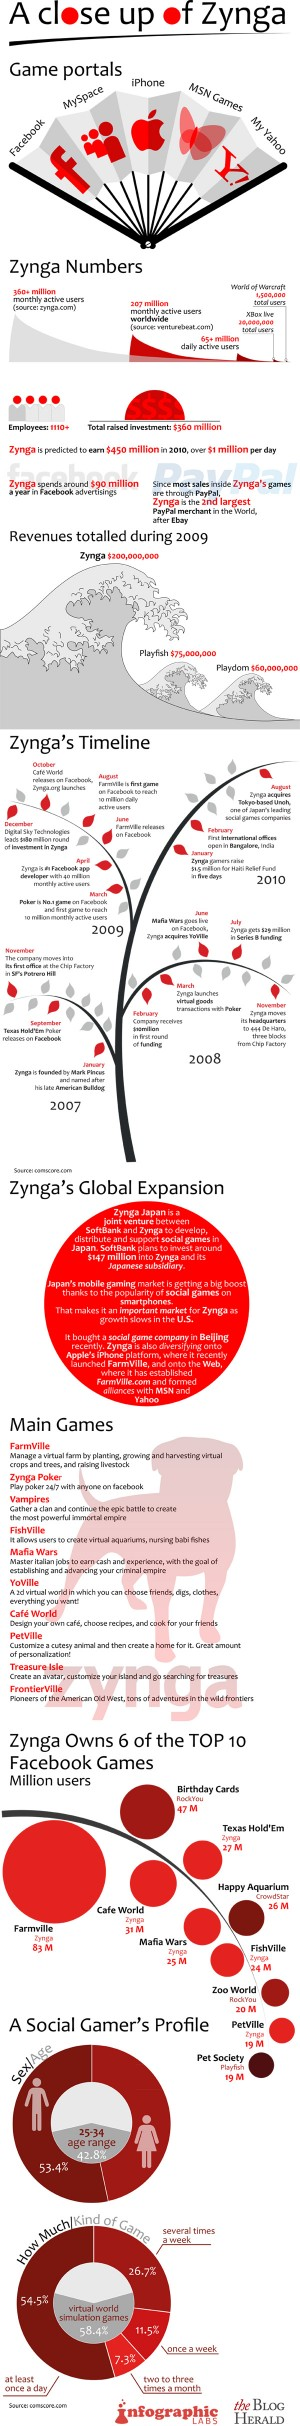 infographic-zynga-statistics